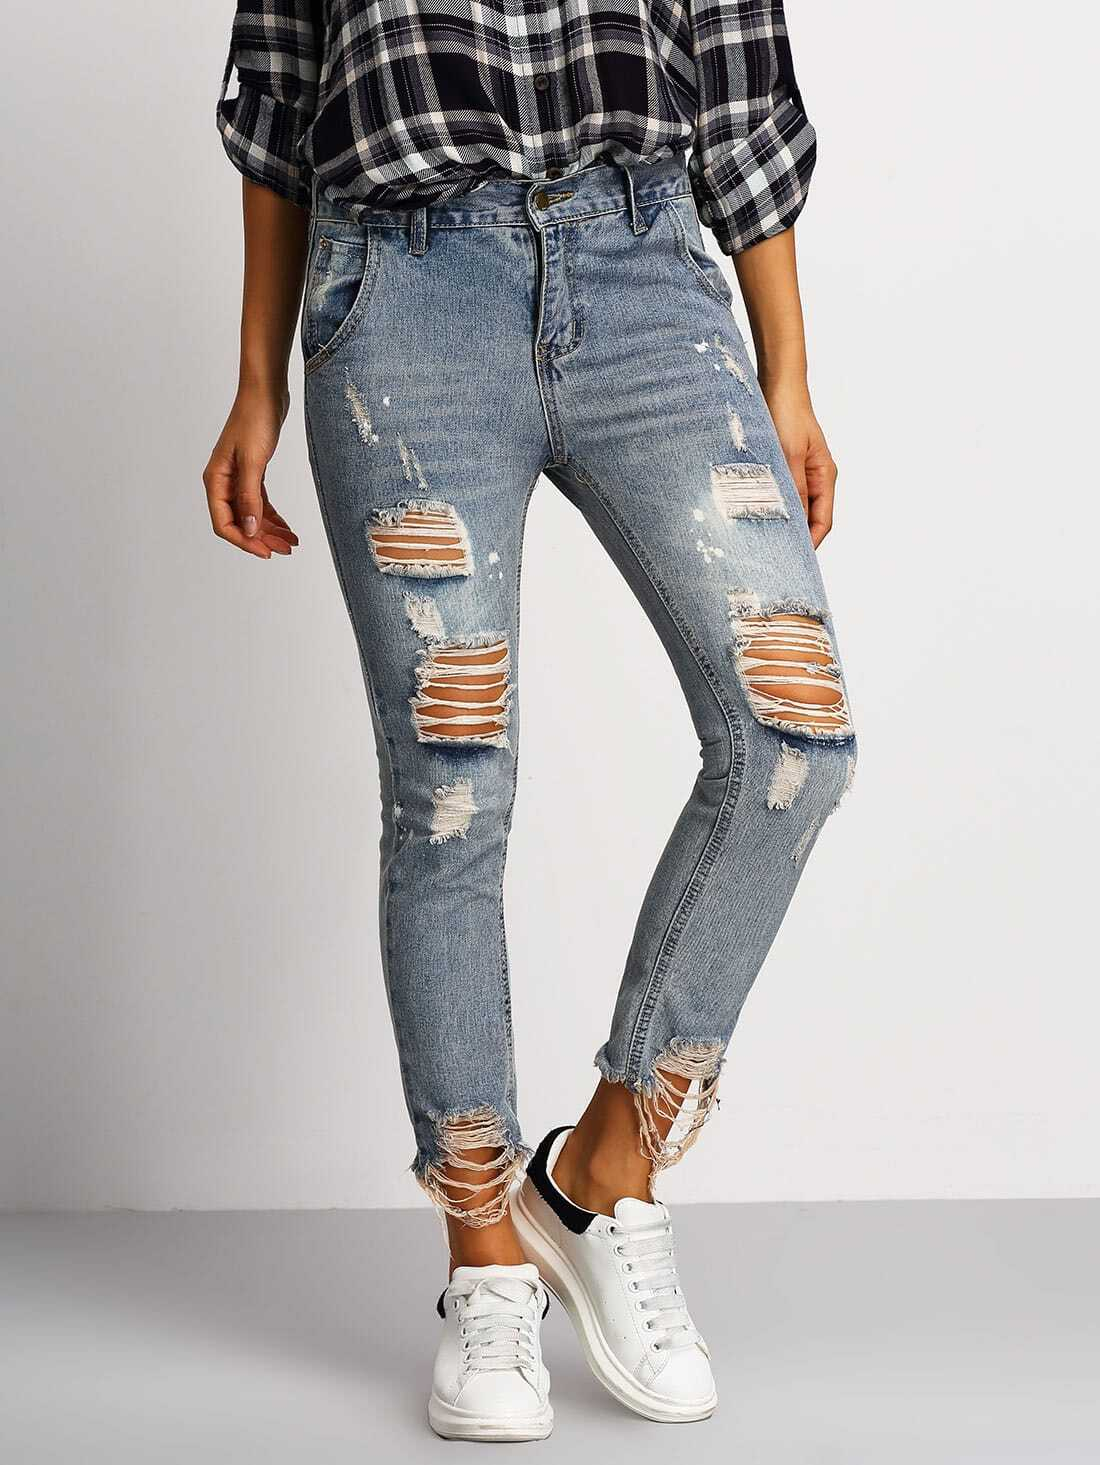 Distressed Skinny Ankle Jeans Pants embroidered distressed skinny jeans